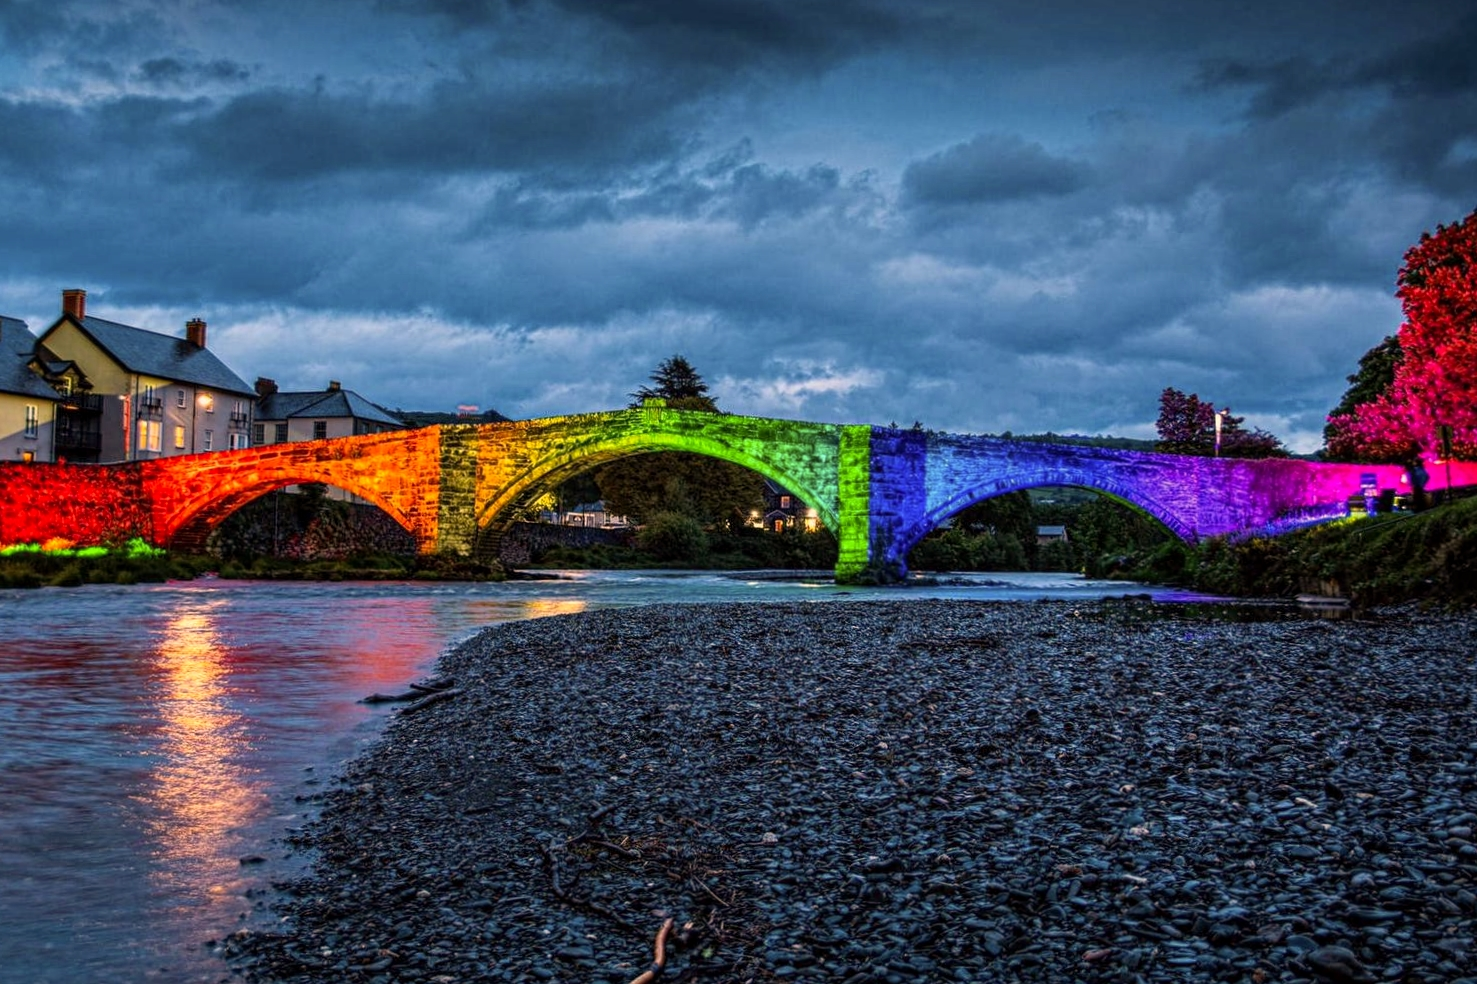 Llanrwst Bridge Lights Rainbow Lighting NHS Tu Hwnt I'r Bont